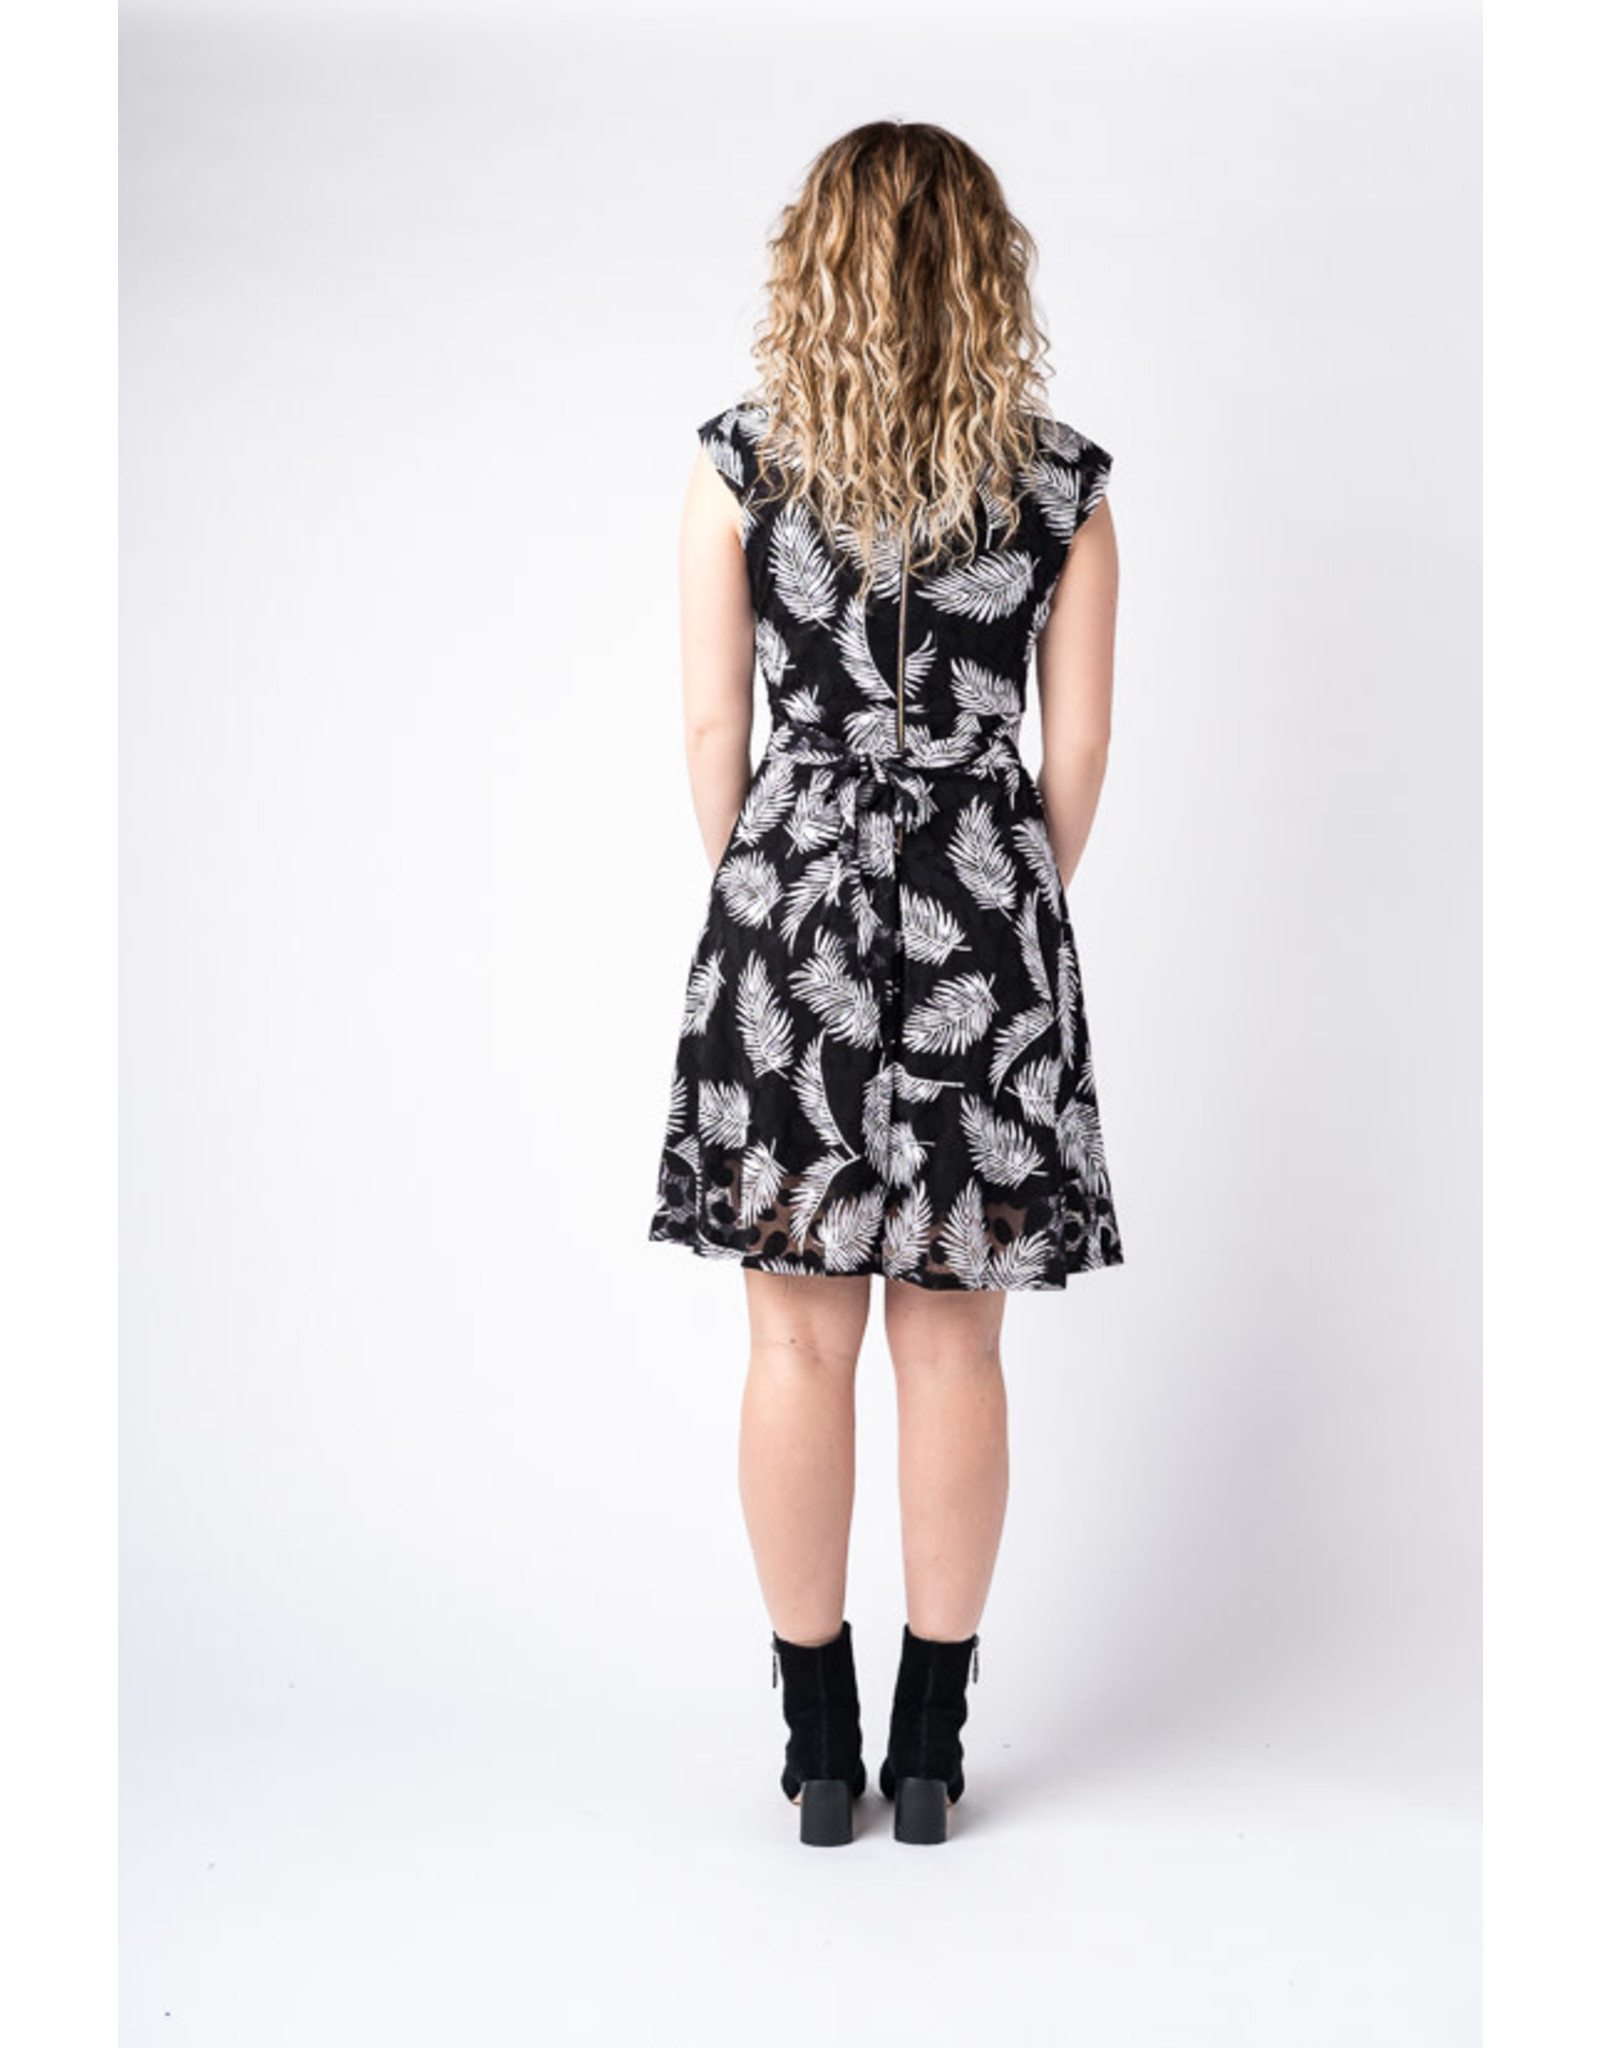 Papillon Dot and leaf lace dress with cap sleeves